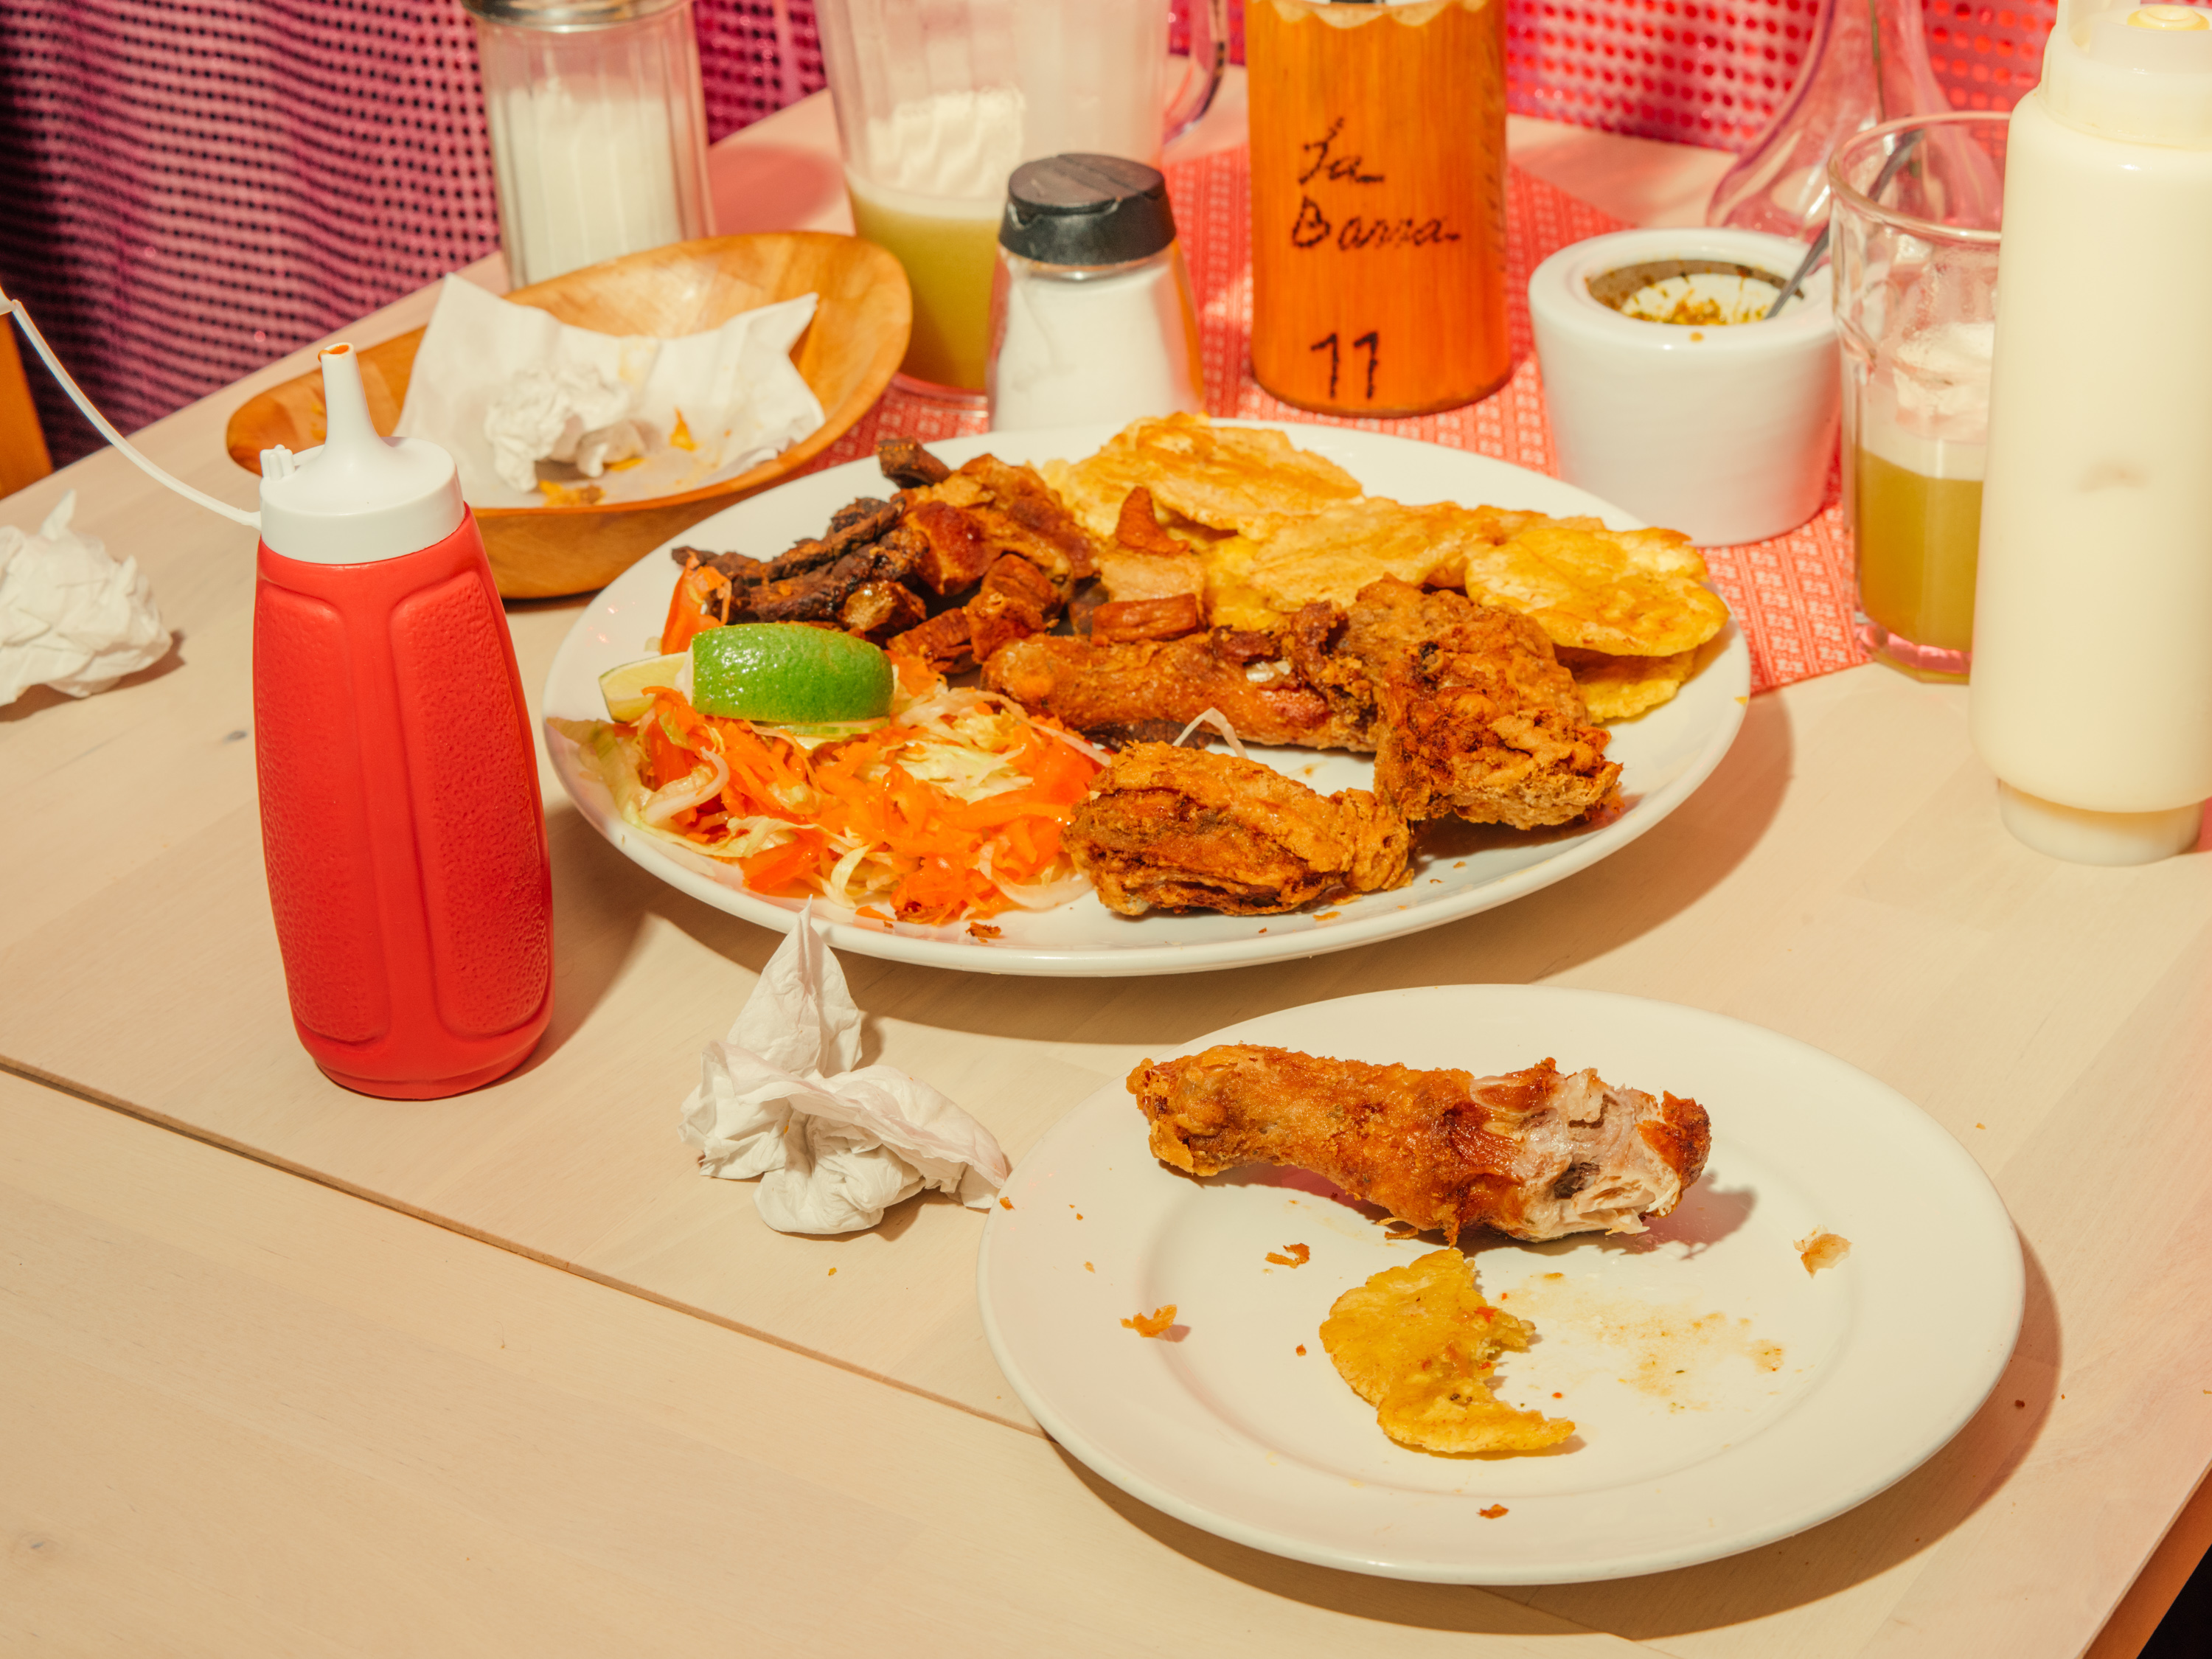 Dominican fried pica pollo at La Barra in Elephant and Castle is some of the best fried chicken in London